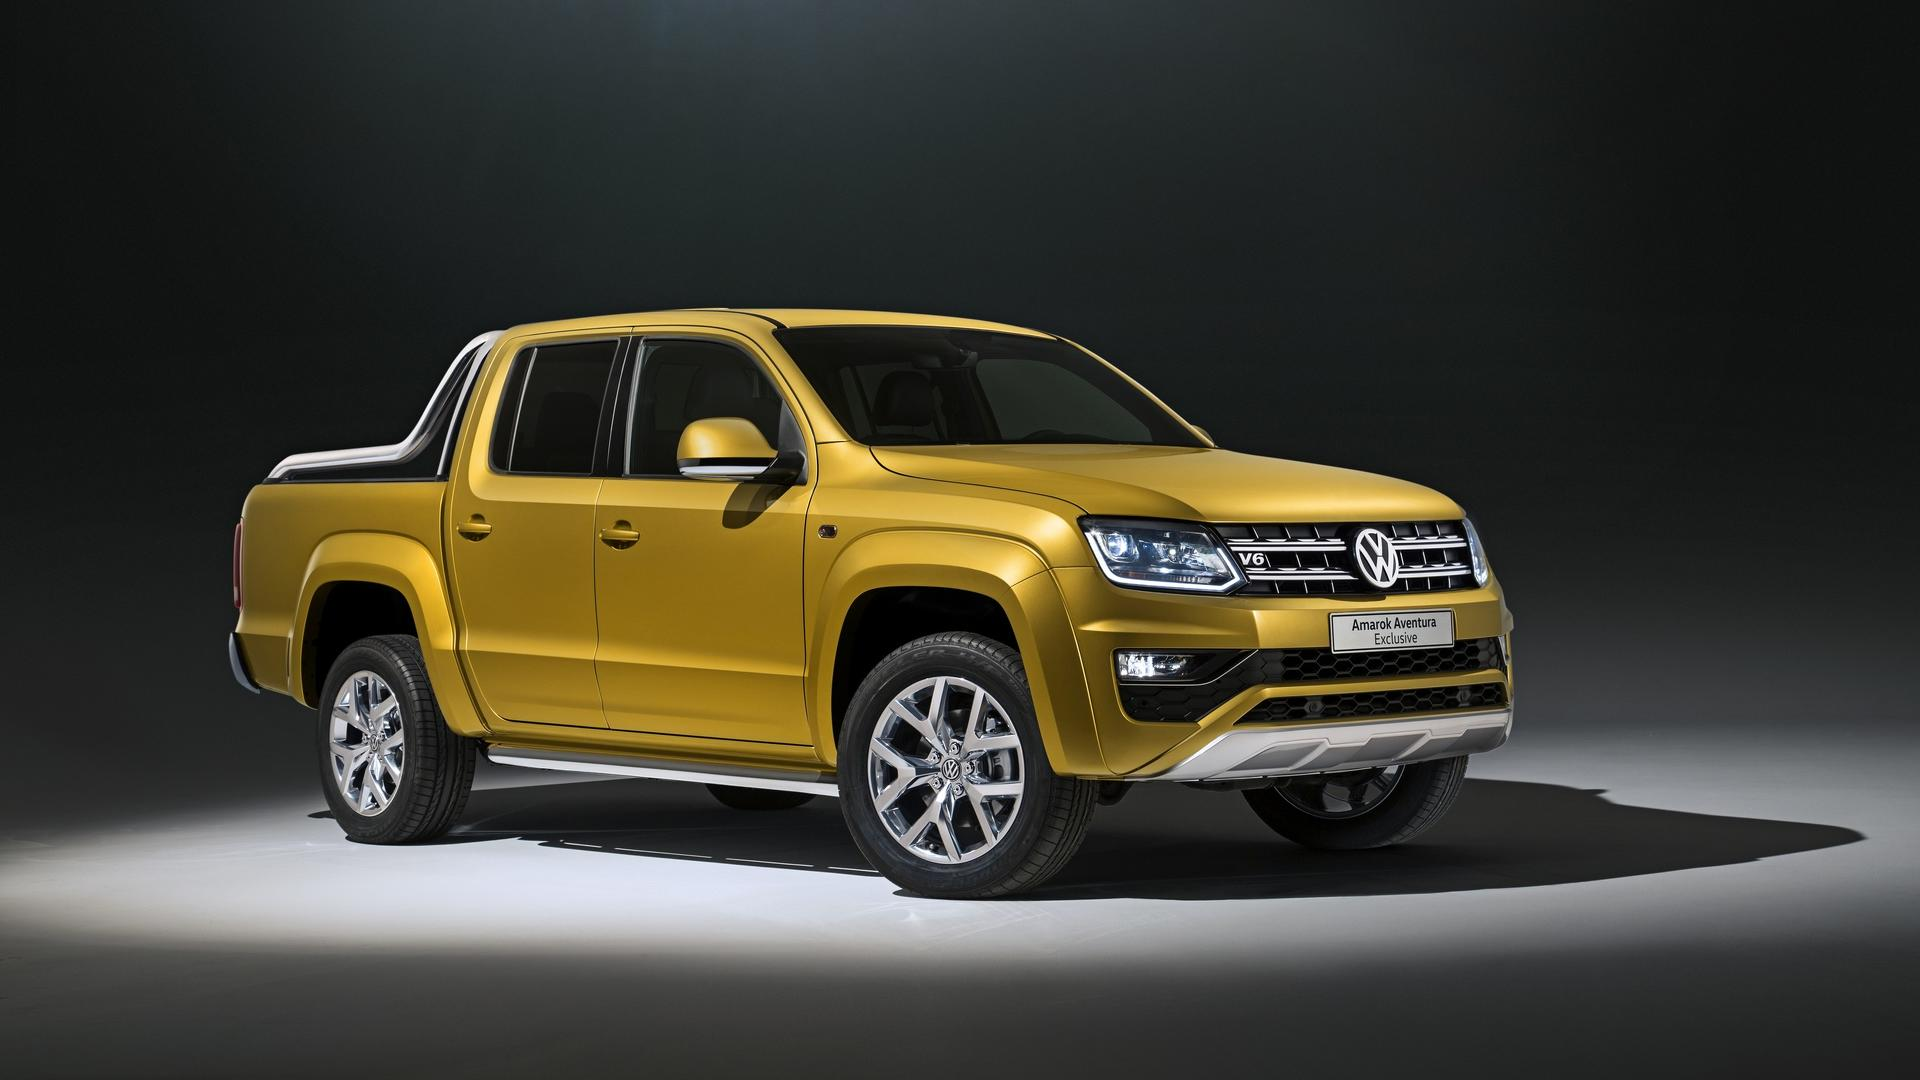 Volkswagen Amarok Aventura Exclusive Concept and Amarok Dark Label Special Edition (2)